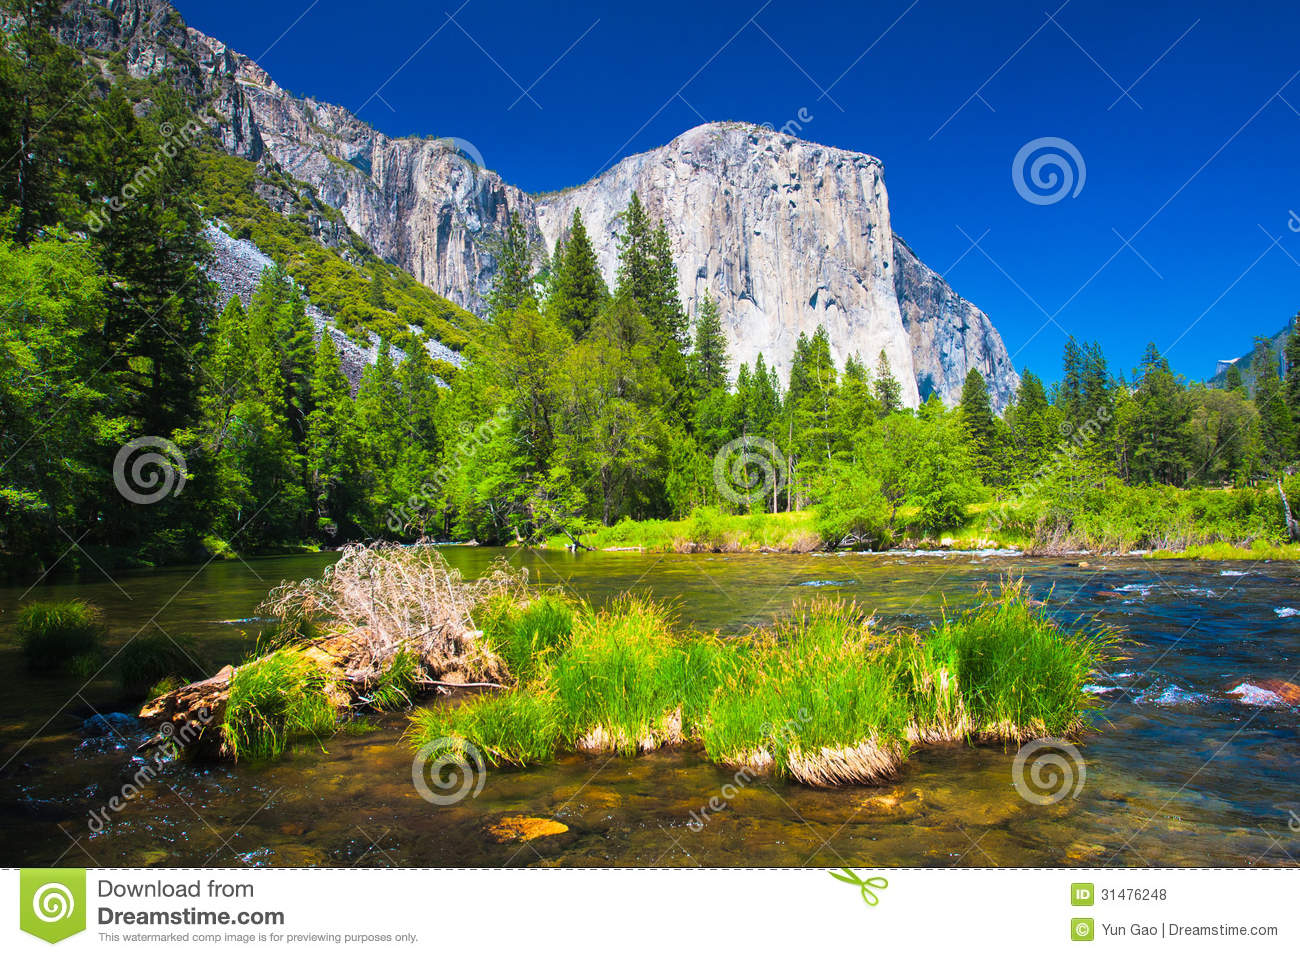 Merced River clipart #16, Download drawings